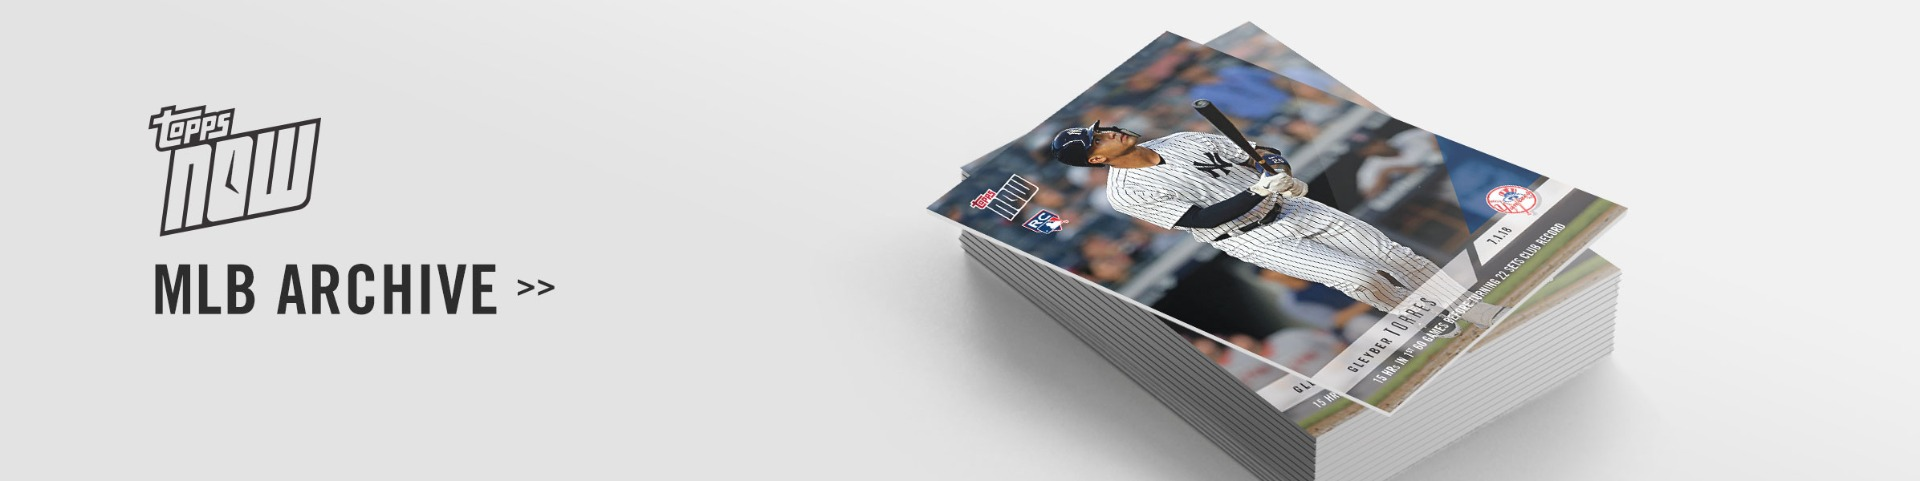 Topps Now MLB Archive